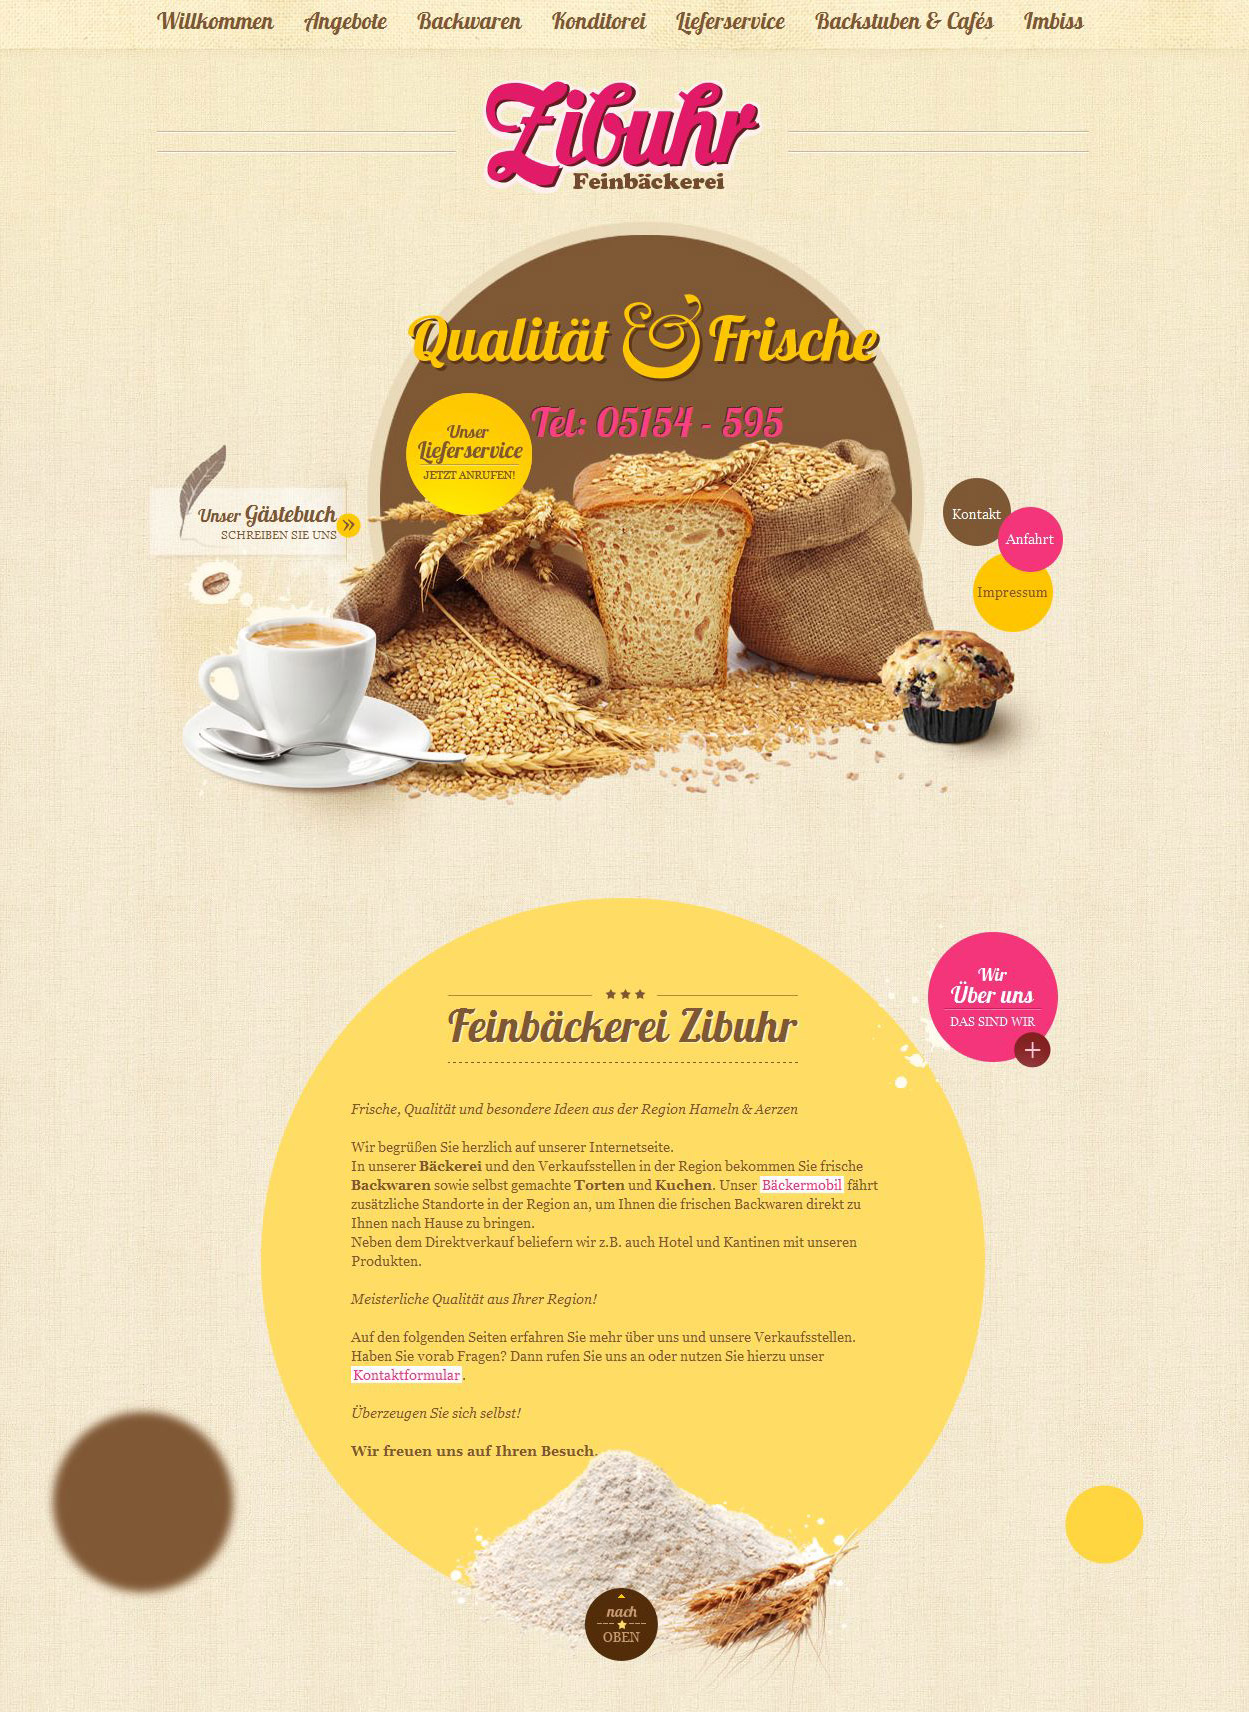 Feinbäckerei Zibuhr Website Screenshot